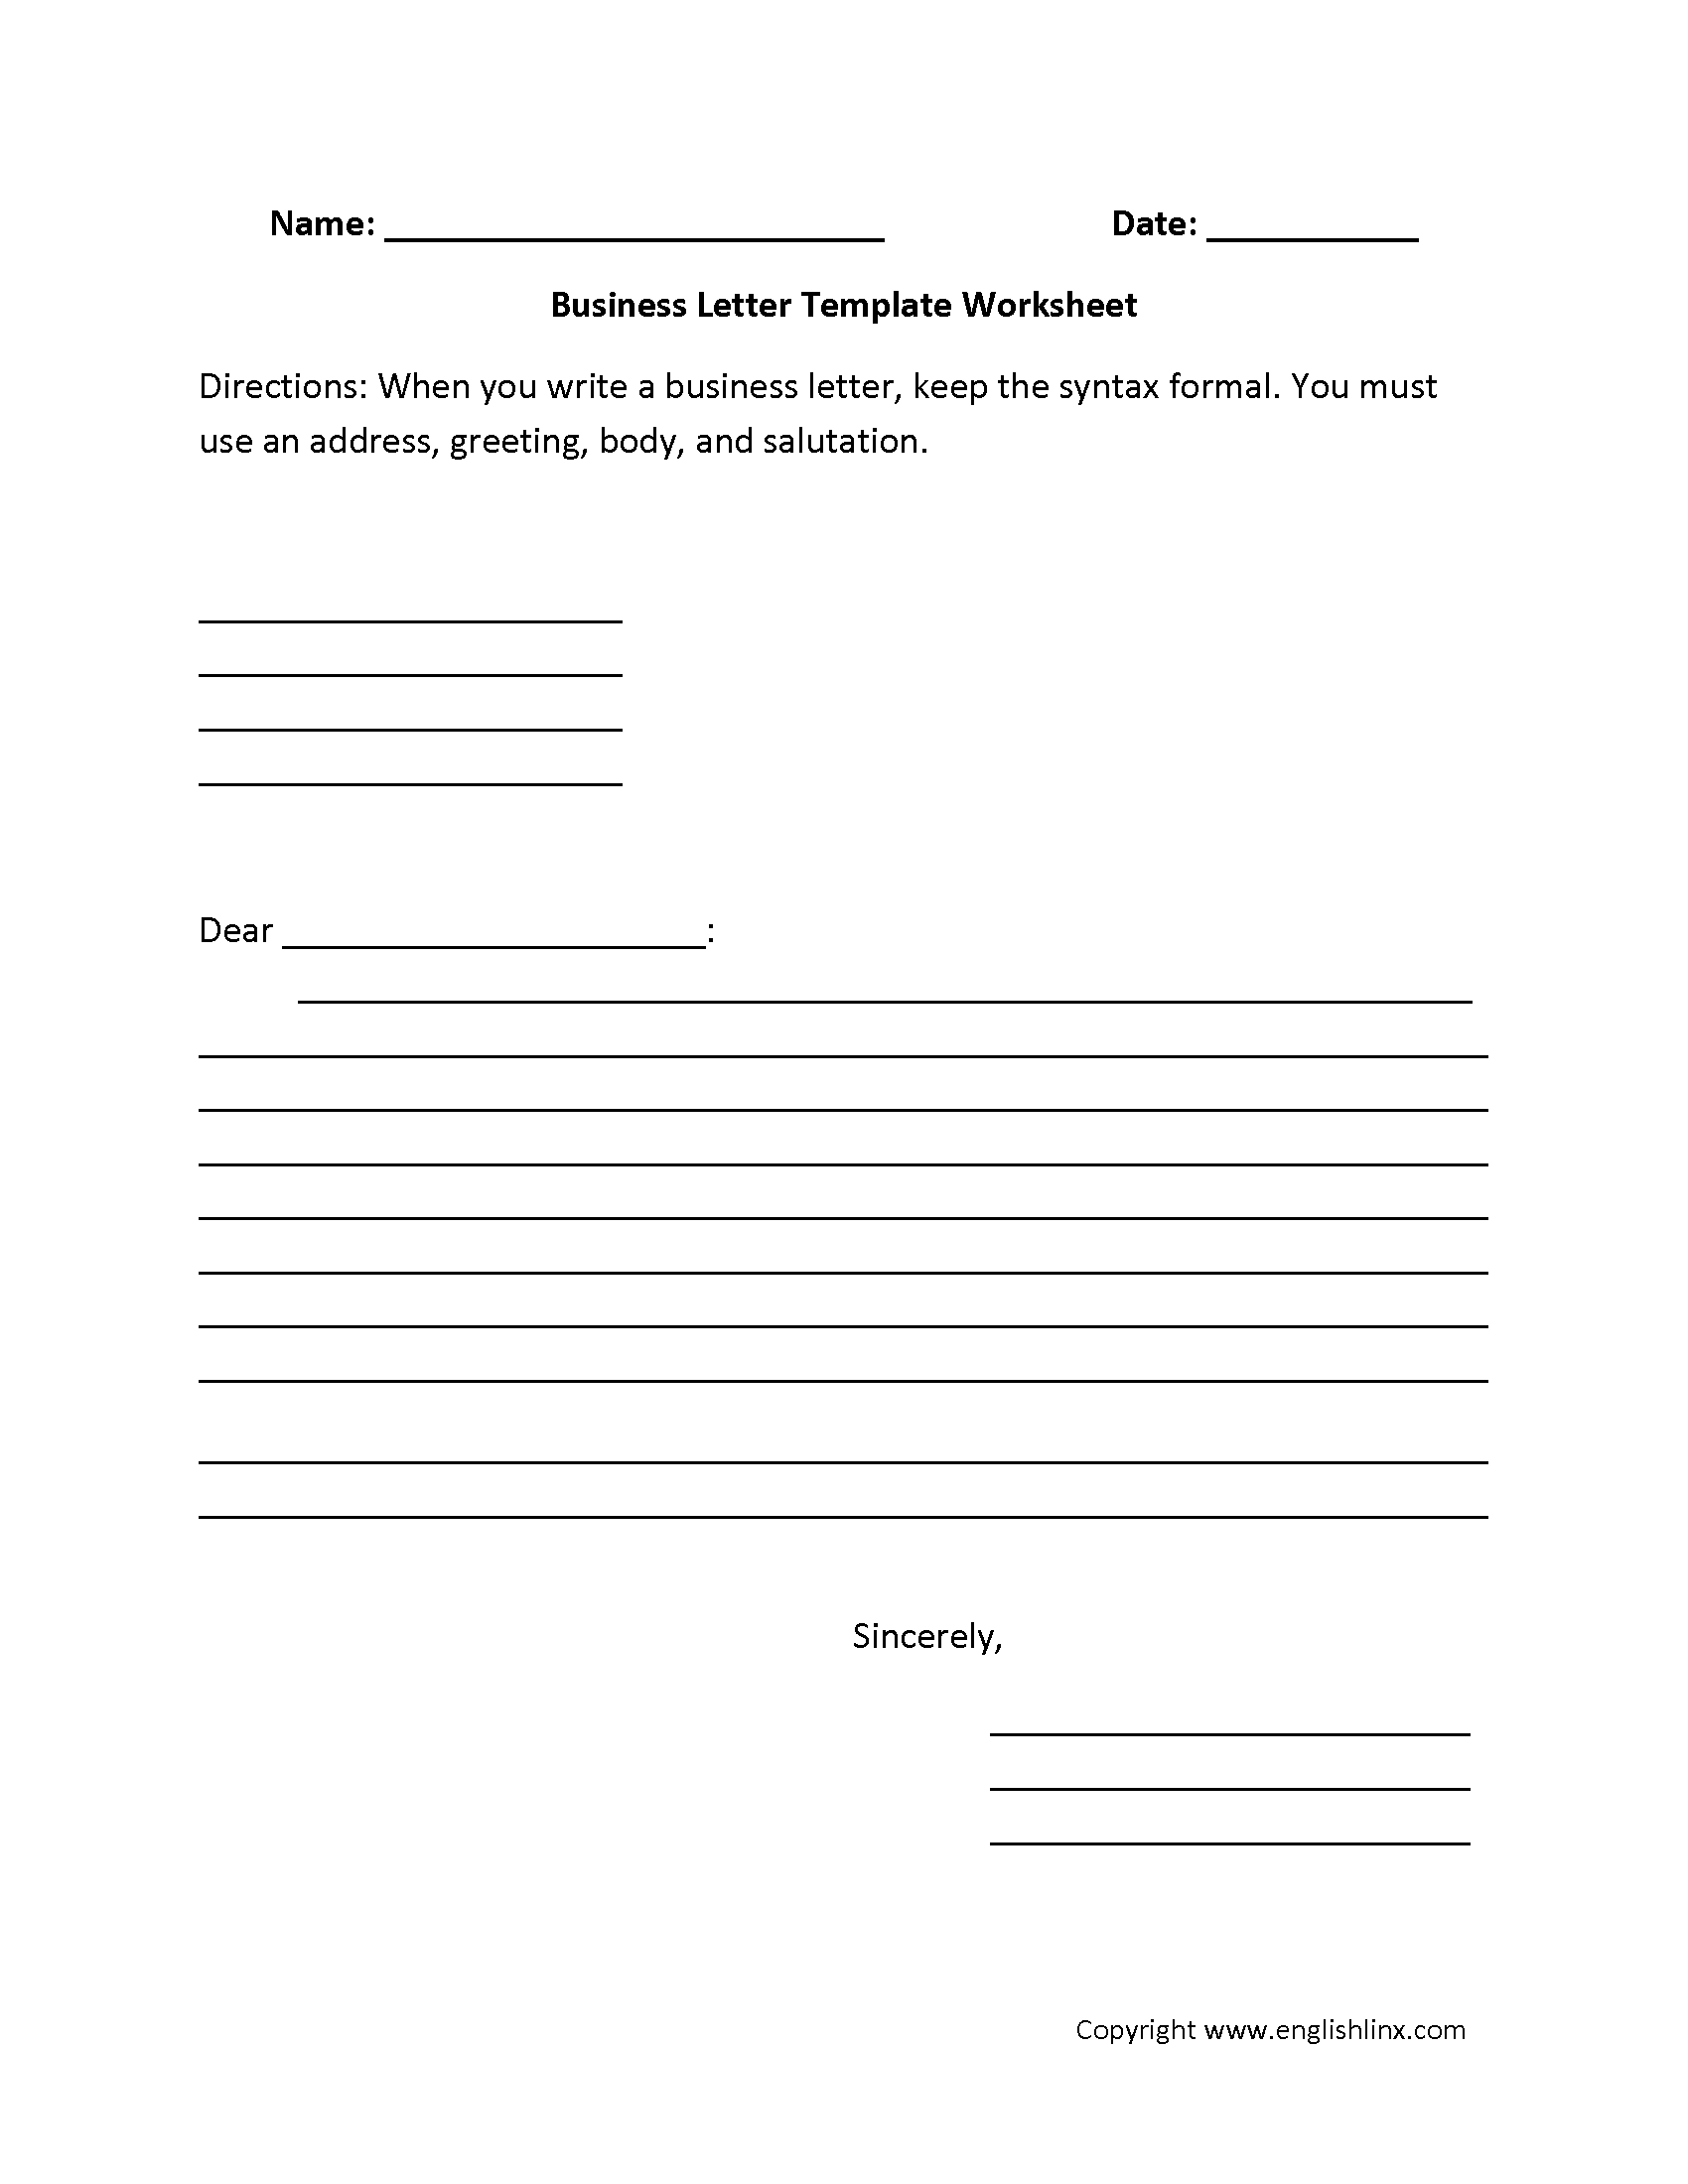 Business Letter Writing Worksheets